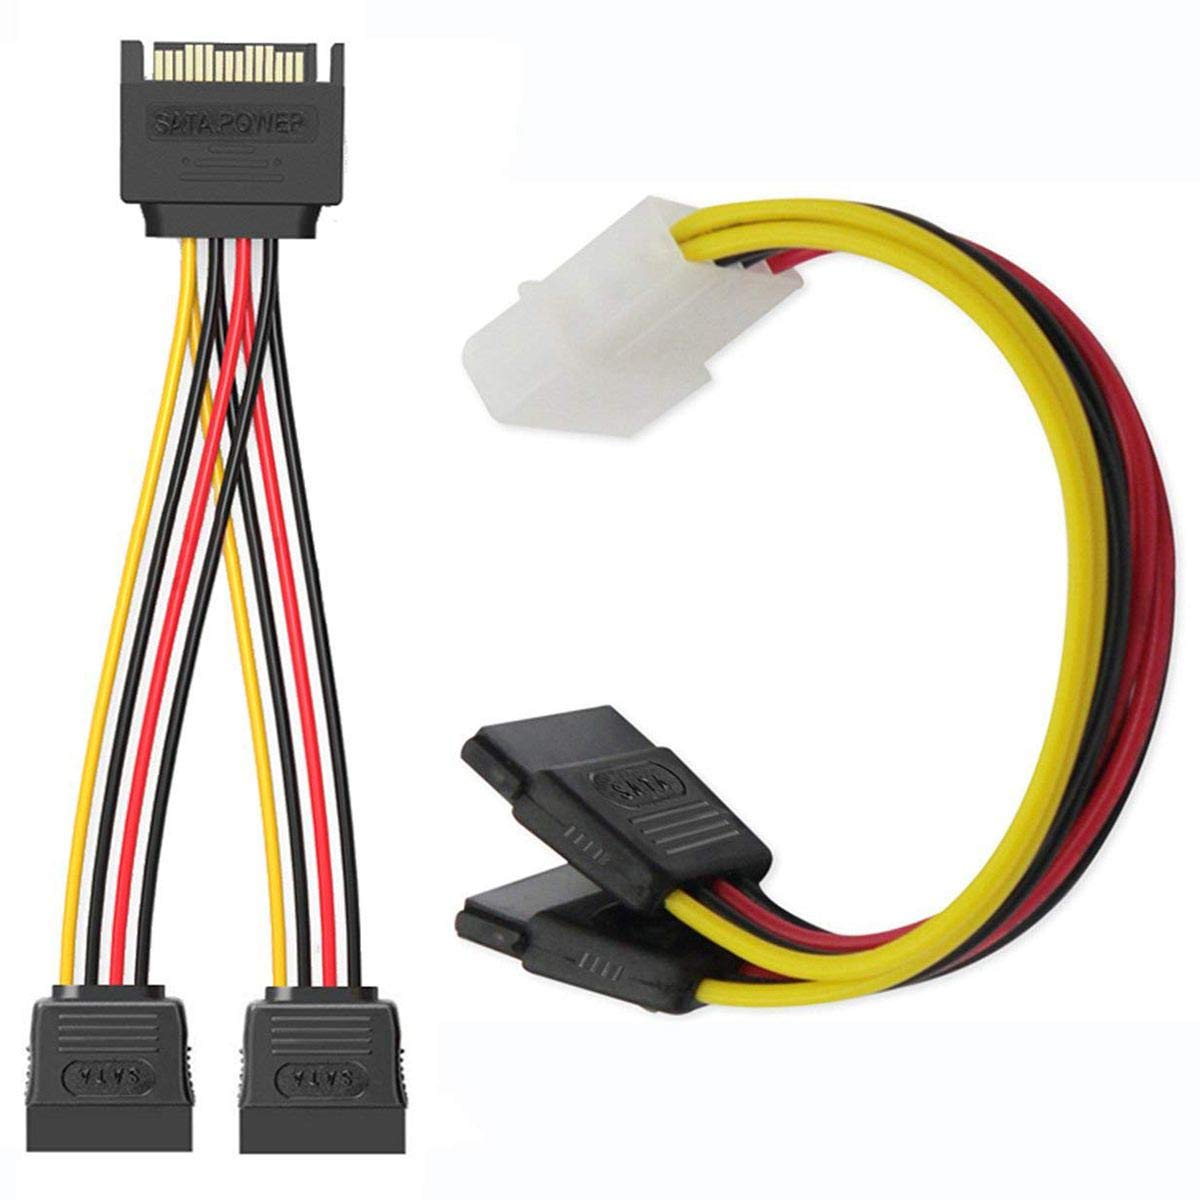 1x 4 Pin to Dual 15 Pin SATA Power Splitter Cable, 1x 15 Pin to Dual 15 Pin S Cailiaoxindong hot-SSD//SATA III Hard Drive Connection Cables